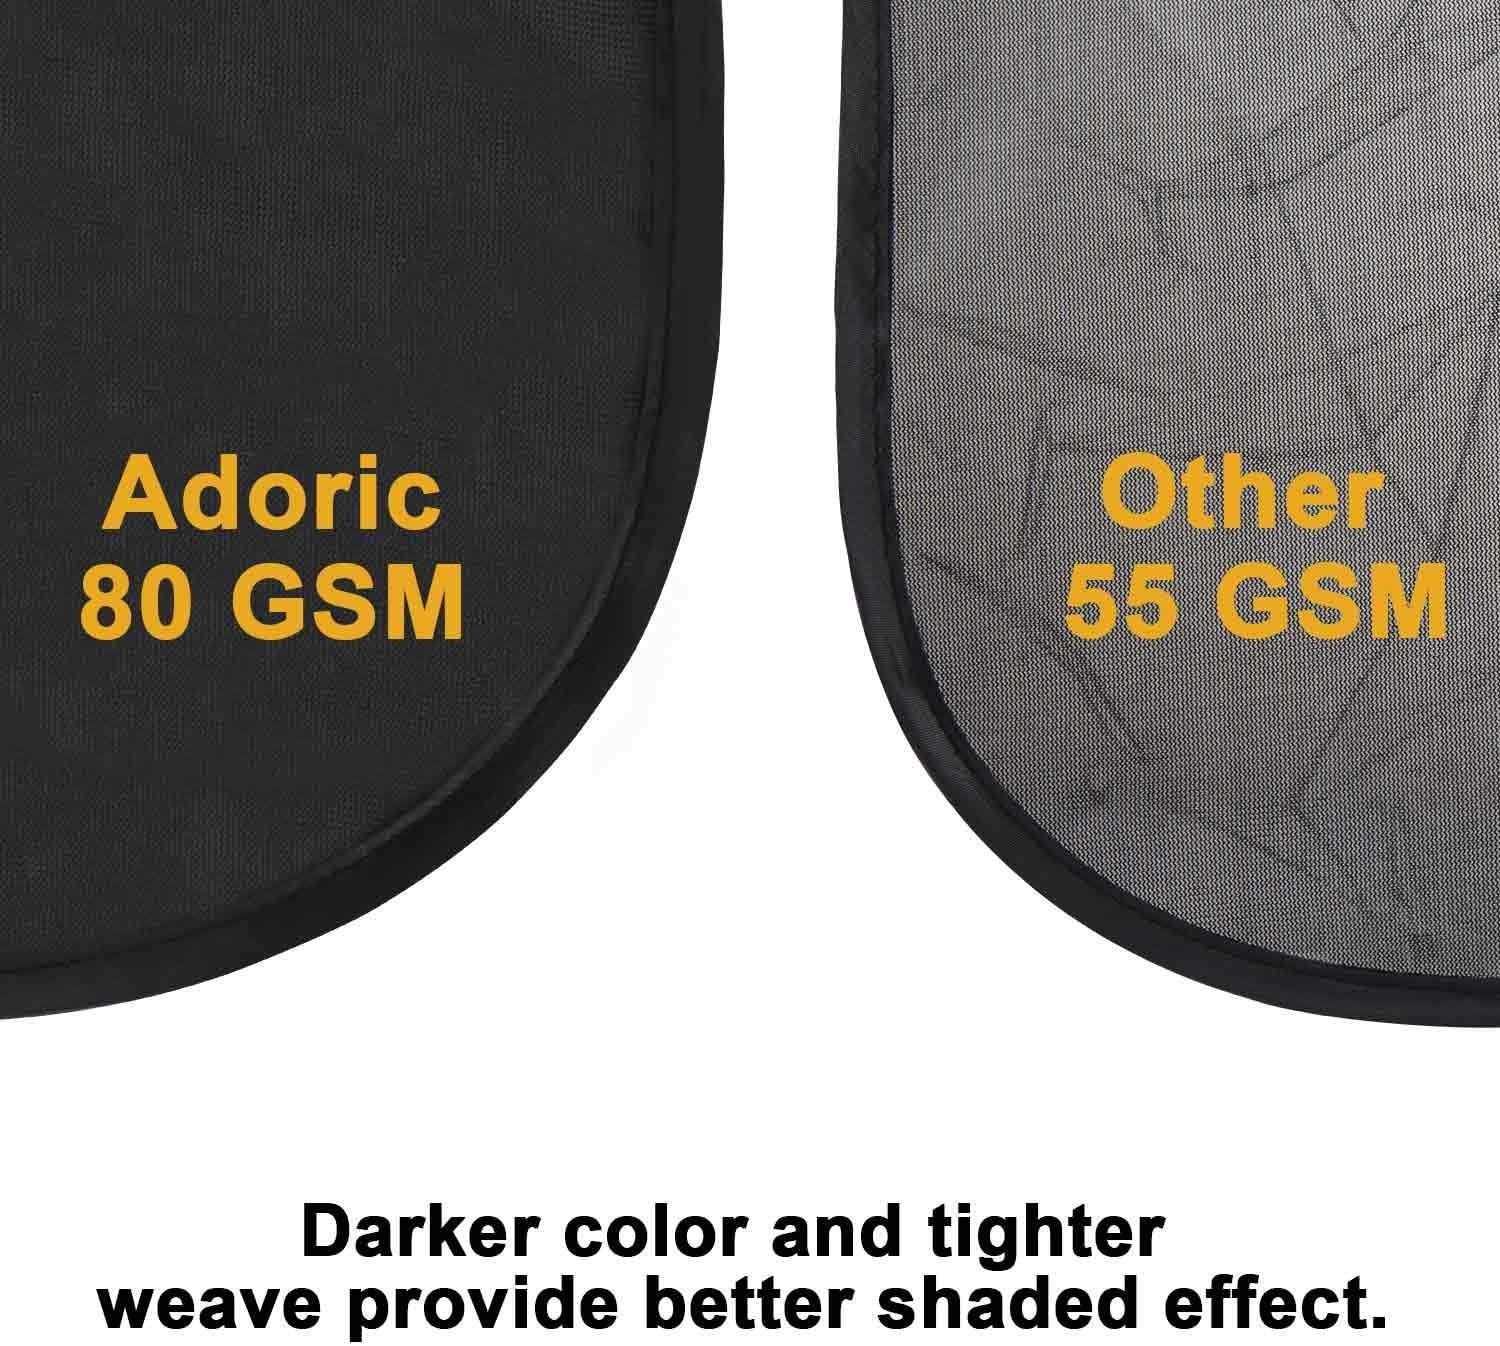 Sun Shade for Car Window,Car Sun Shade for Baby /& KidsCar Sun Protector Block UV Rays Car Window Shade Blinds 30cm and 2 Pack 44*36cm in a Handy Pouch Suitable For Most Vehicles-Black 2 Pack 50